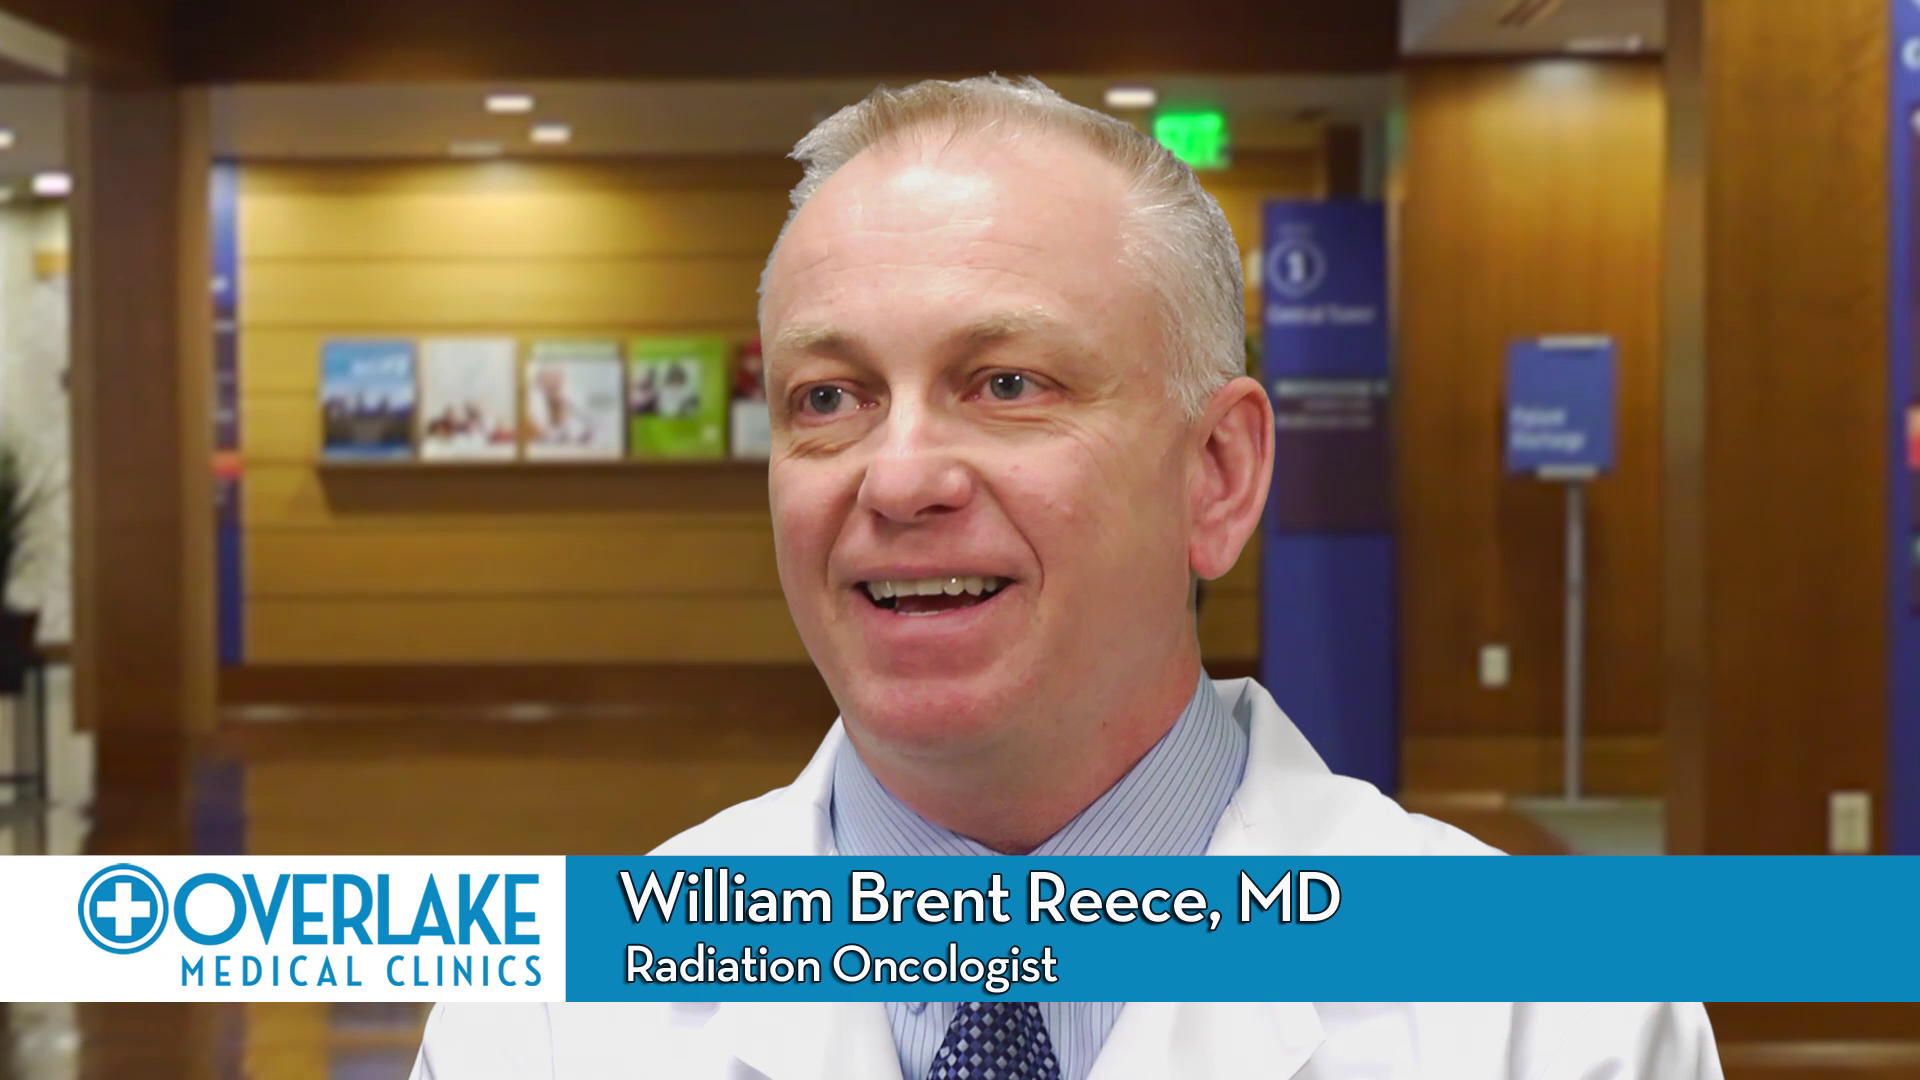 Dr. Reece talks about his practice